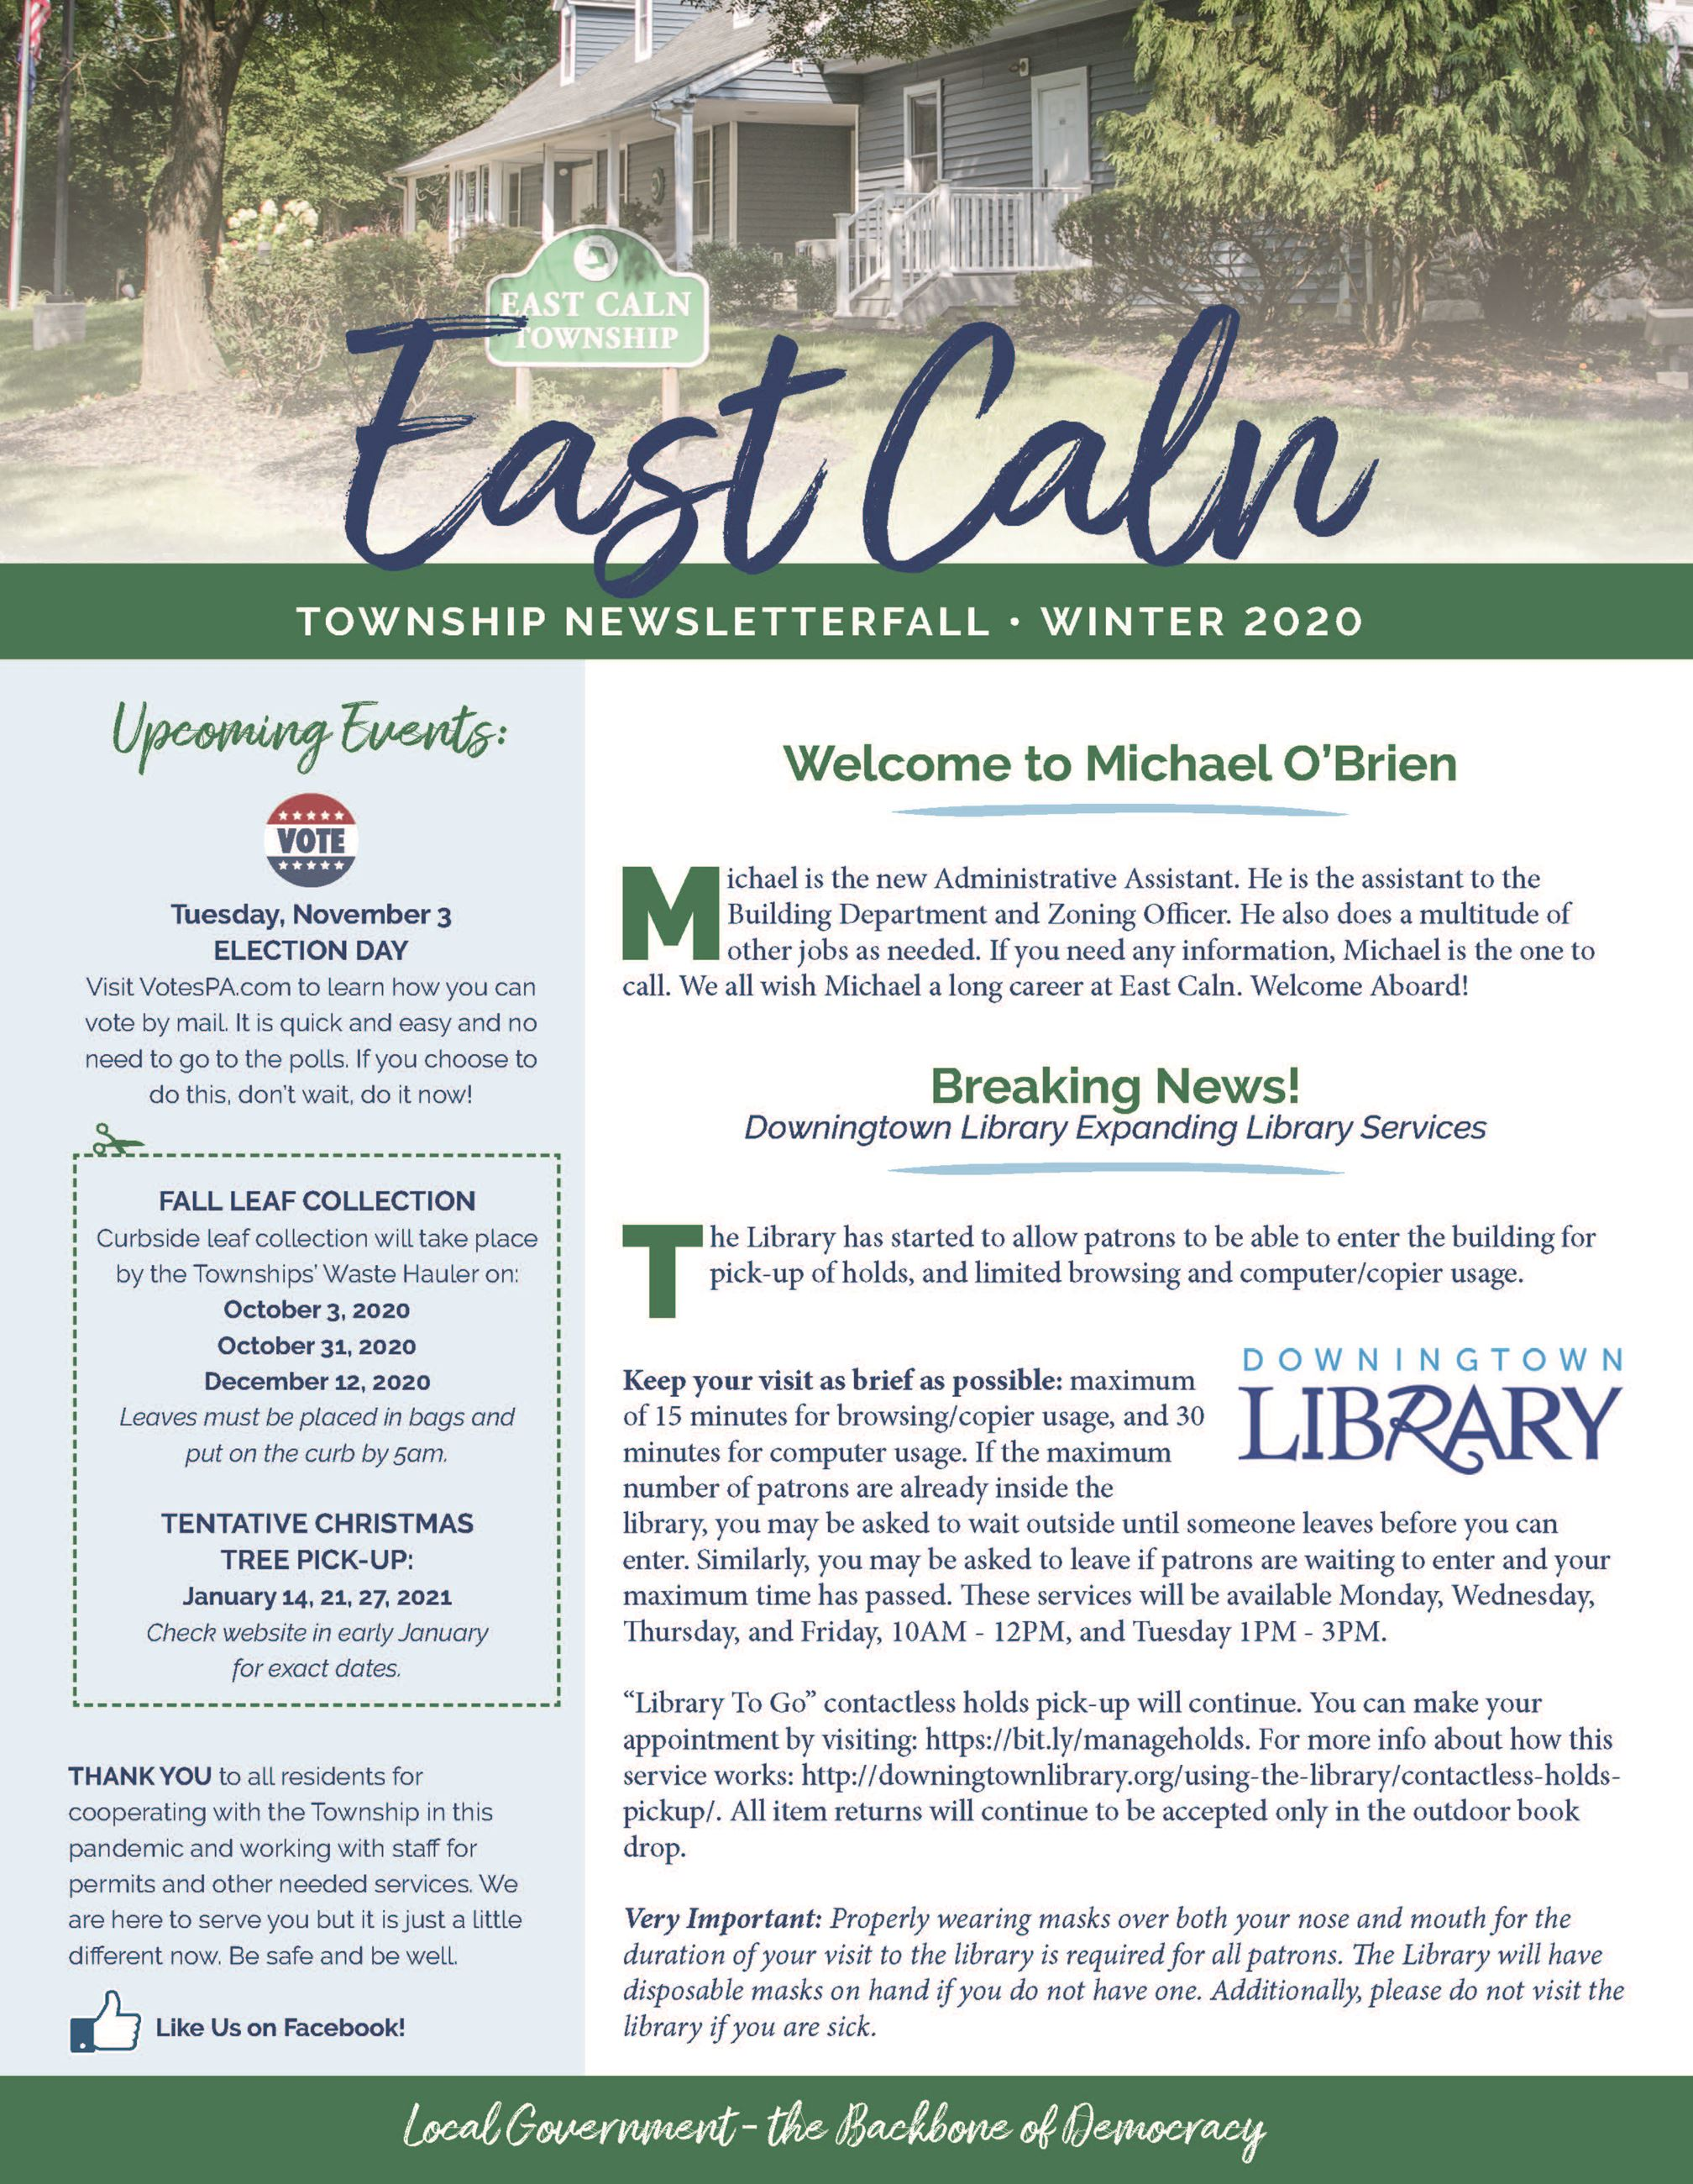 ECT FALL WINTER NEWSLETTER 0820 V2_Page_1